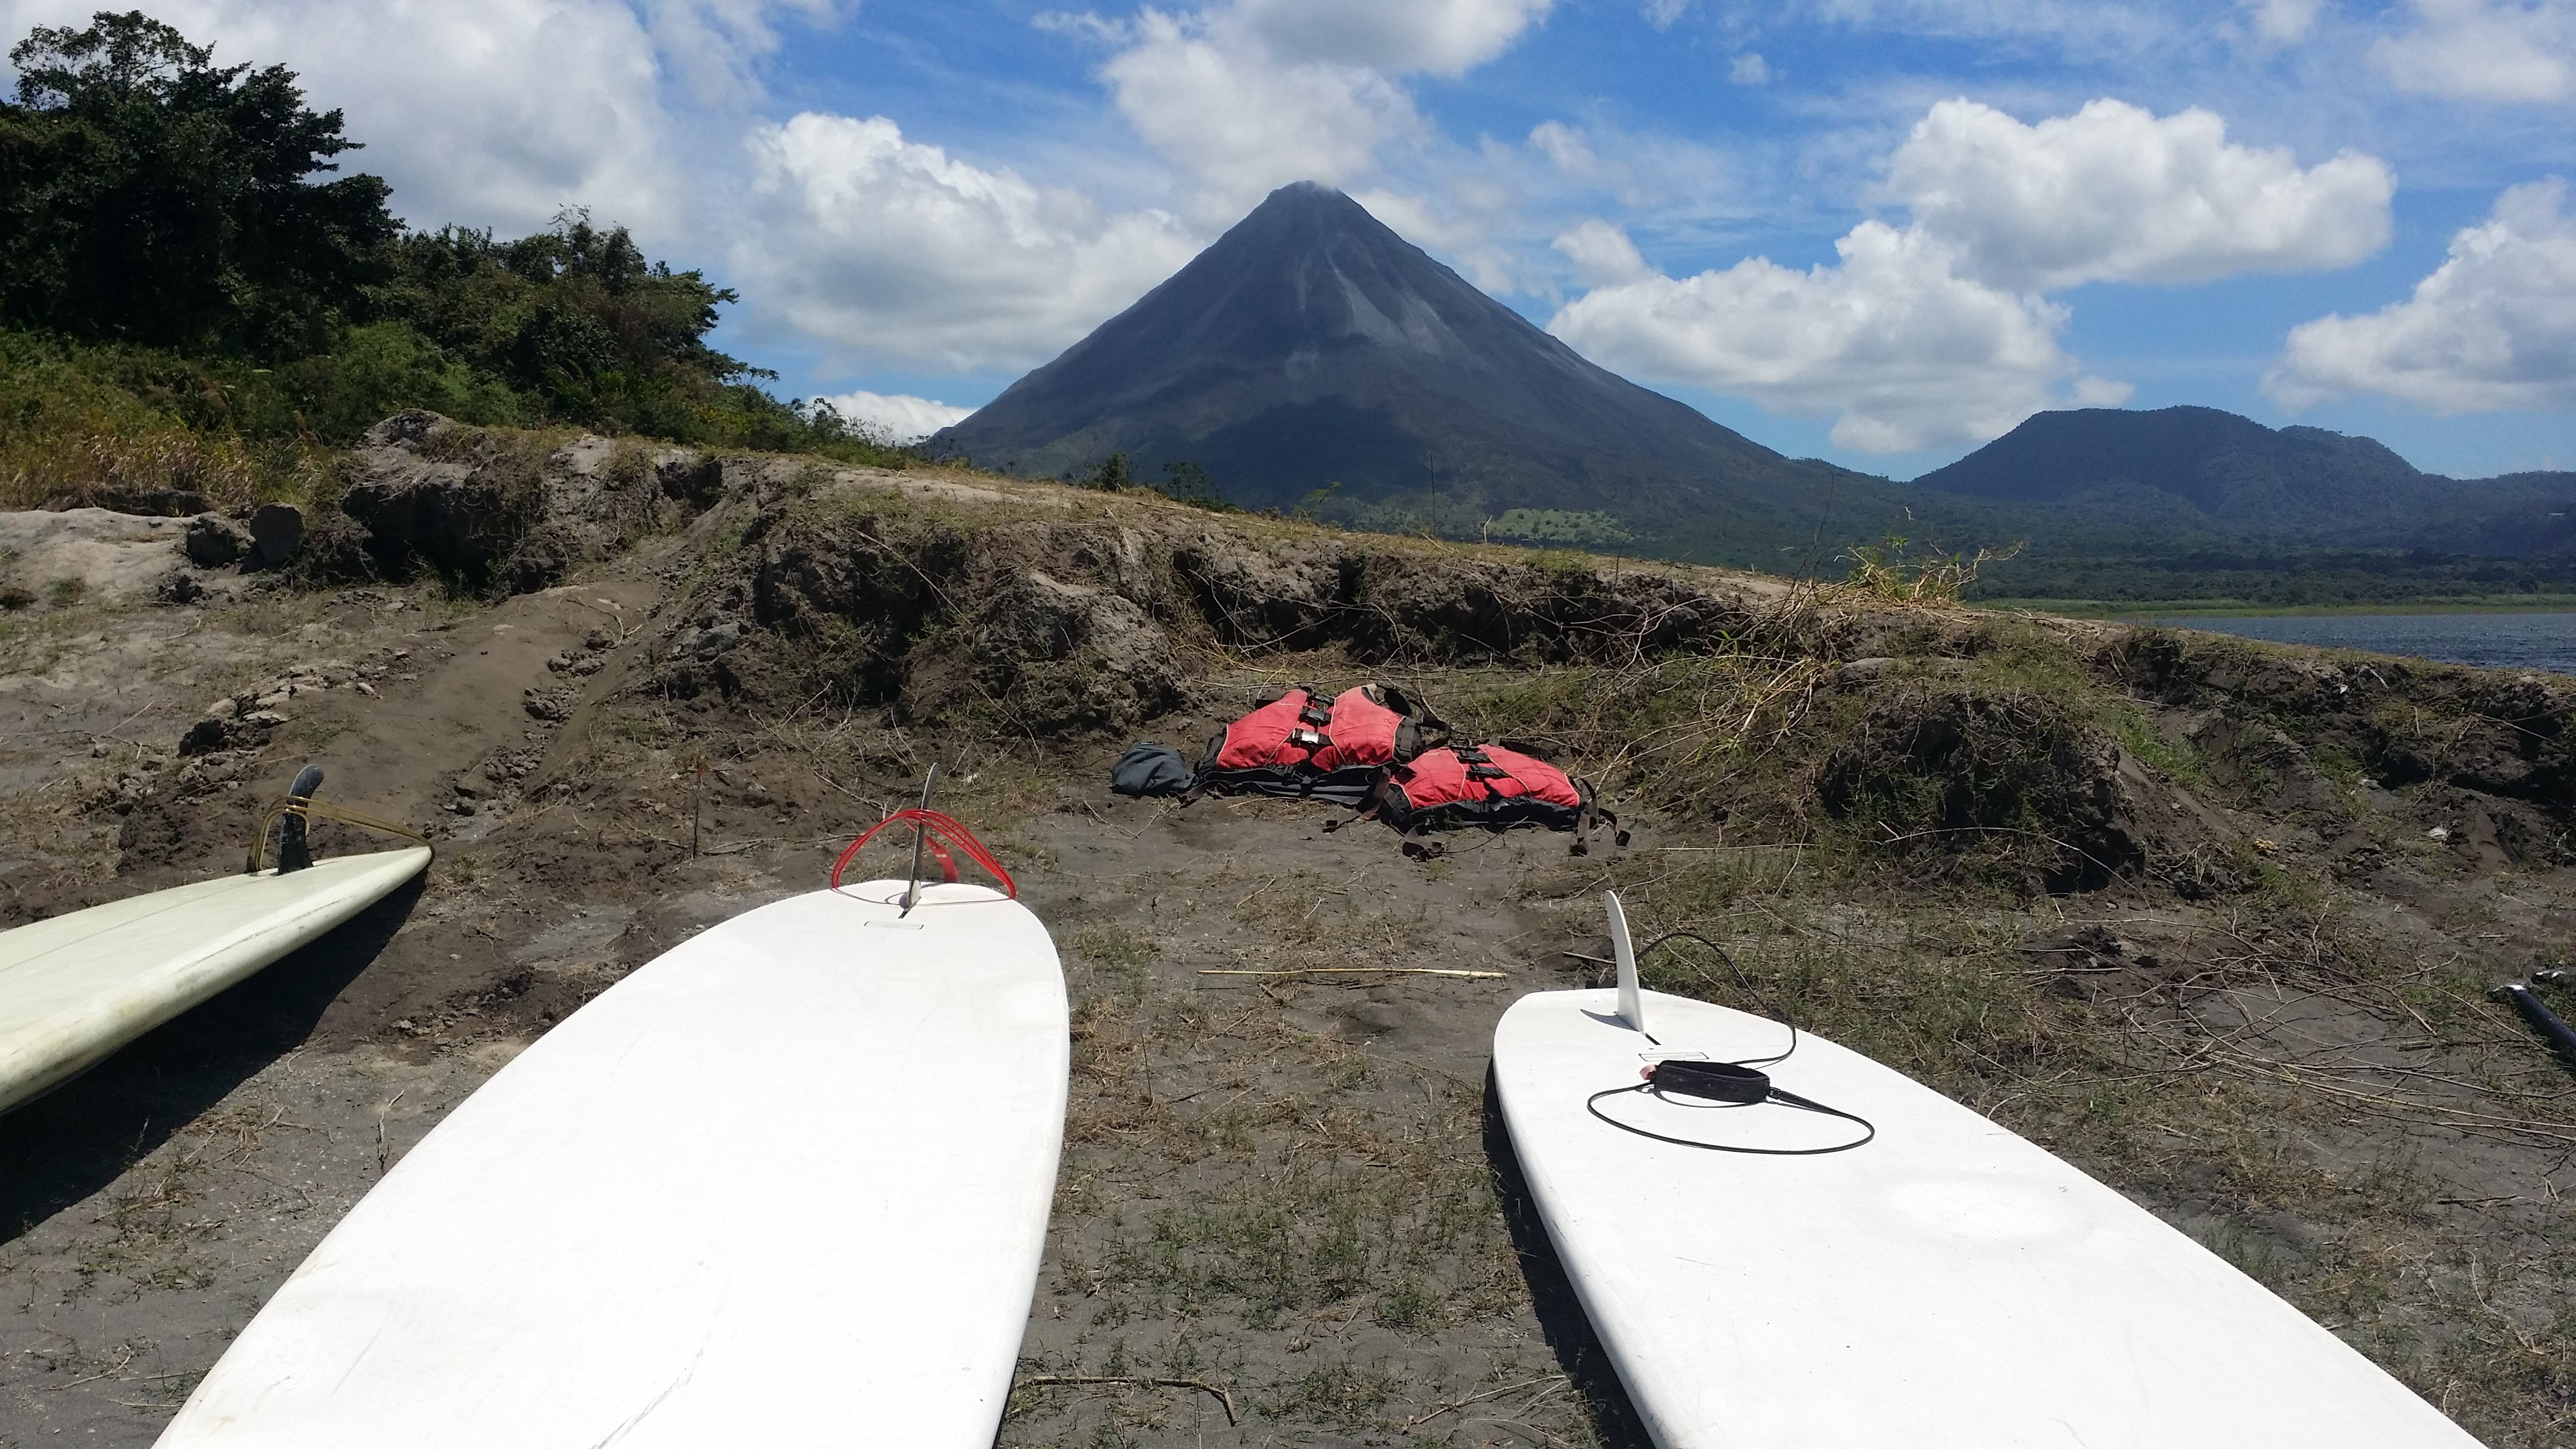 Getting the boards ready for Stand Up Paddling at the Arenal Volcano.